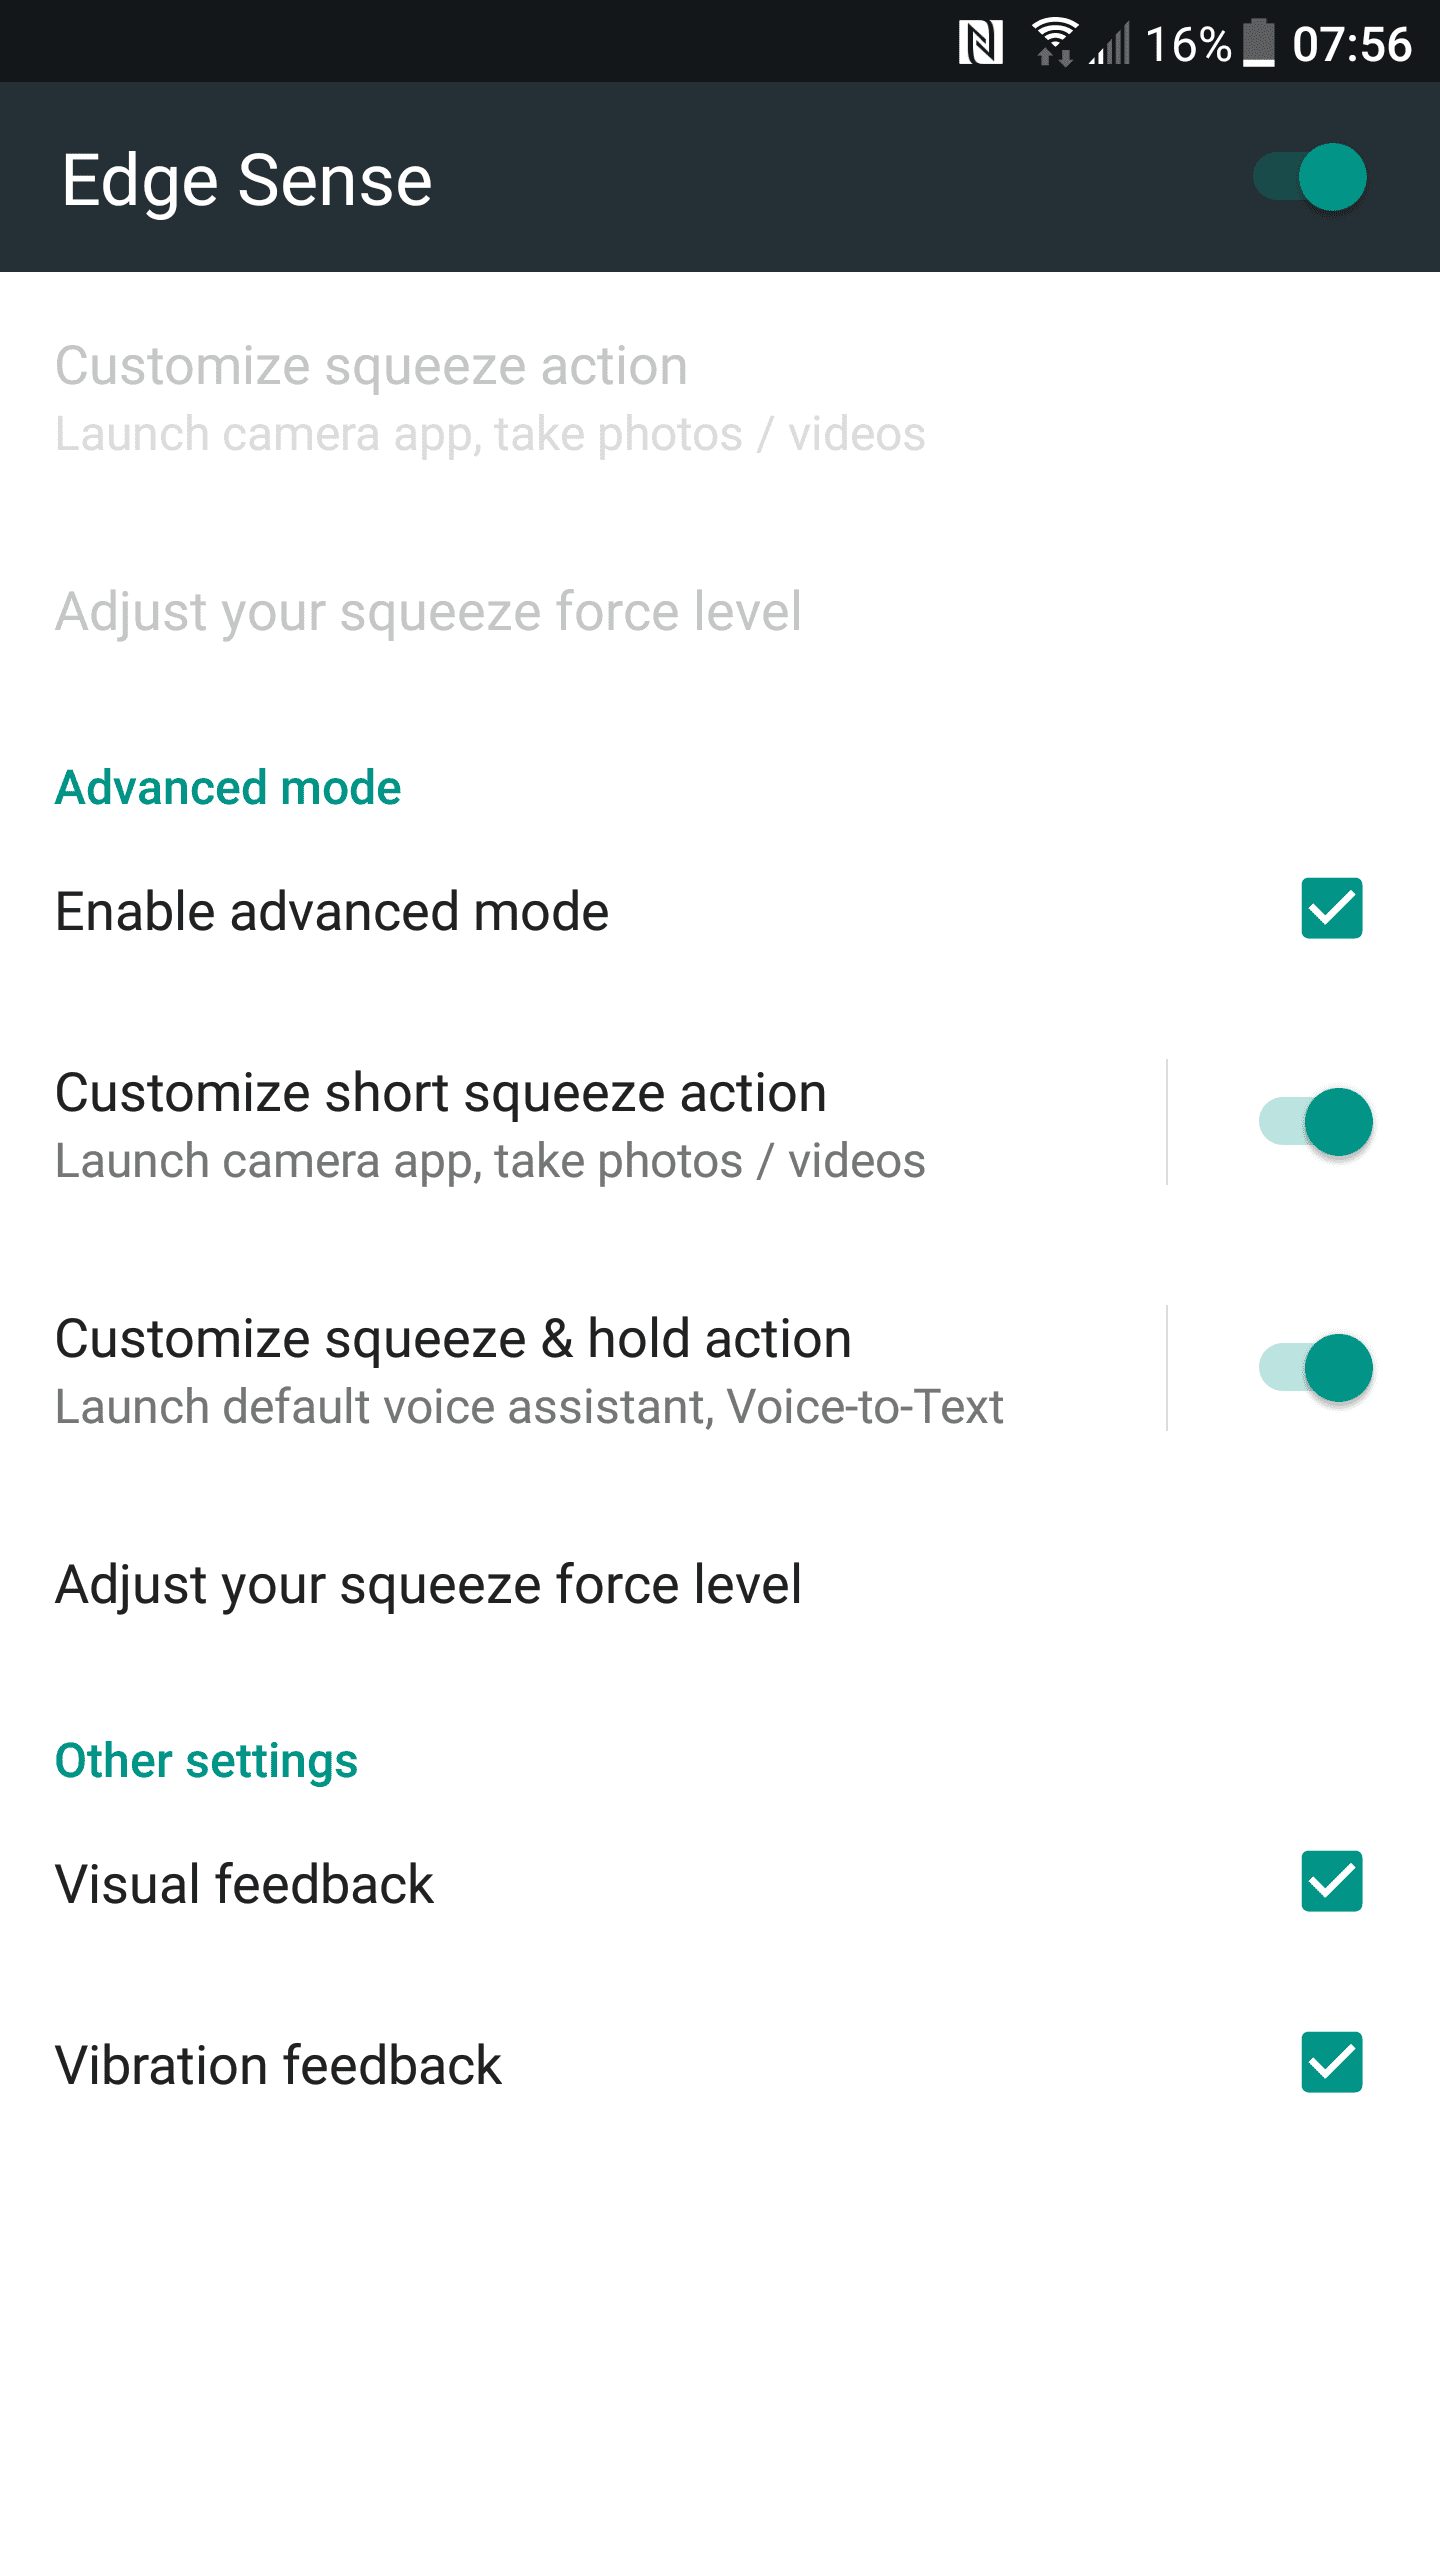 HTC U11 Edge Sense settings 02, advanced mode enabled